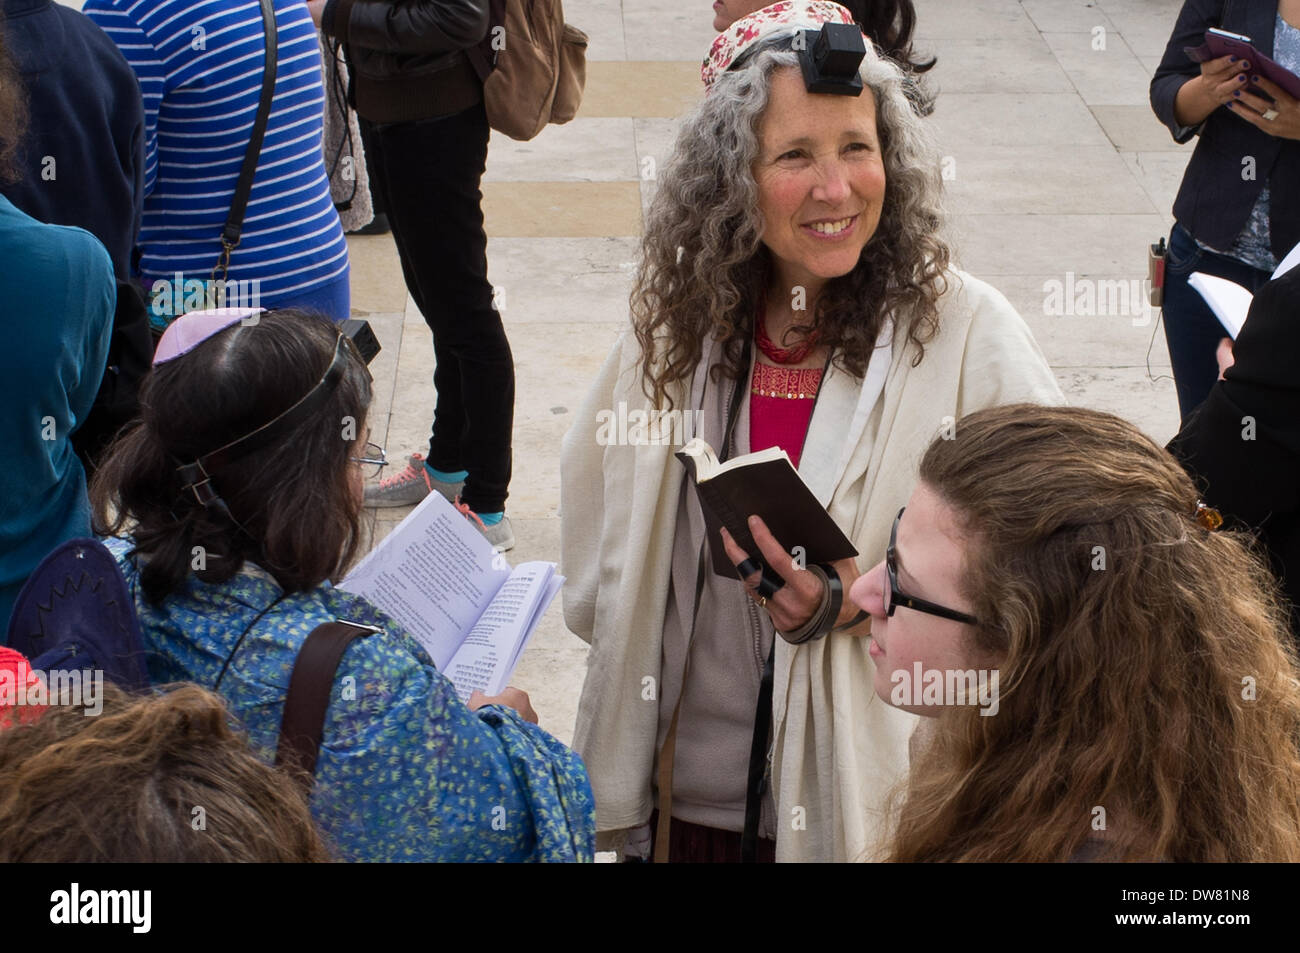 Jerusalem, Israel. 3rd March, 2014. Reform Jewish women, mostly belonging to the 'Women of the Wall' movement, pray in the women's section wearing Phylacteries in a manner reserved by Orthodox Judaism only to men as they celebrate the beginning of the Hebrew month of Adar II at the Kotel, the Western Wall. Credit:  Nir Alon/Alamy Live News - Stock Image